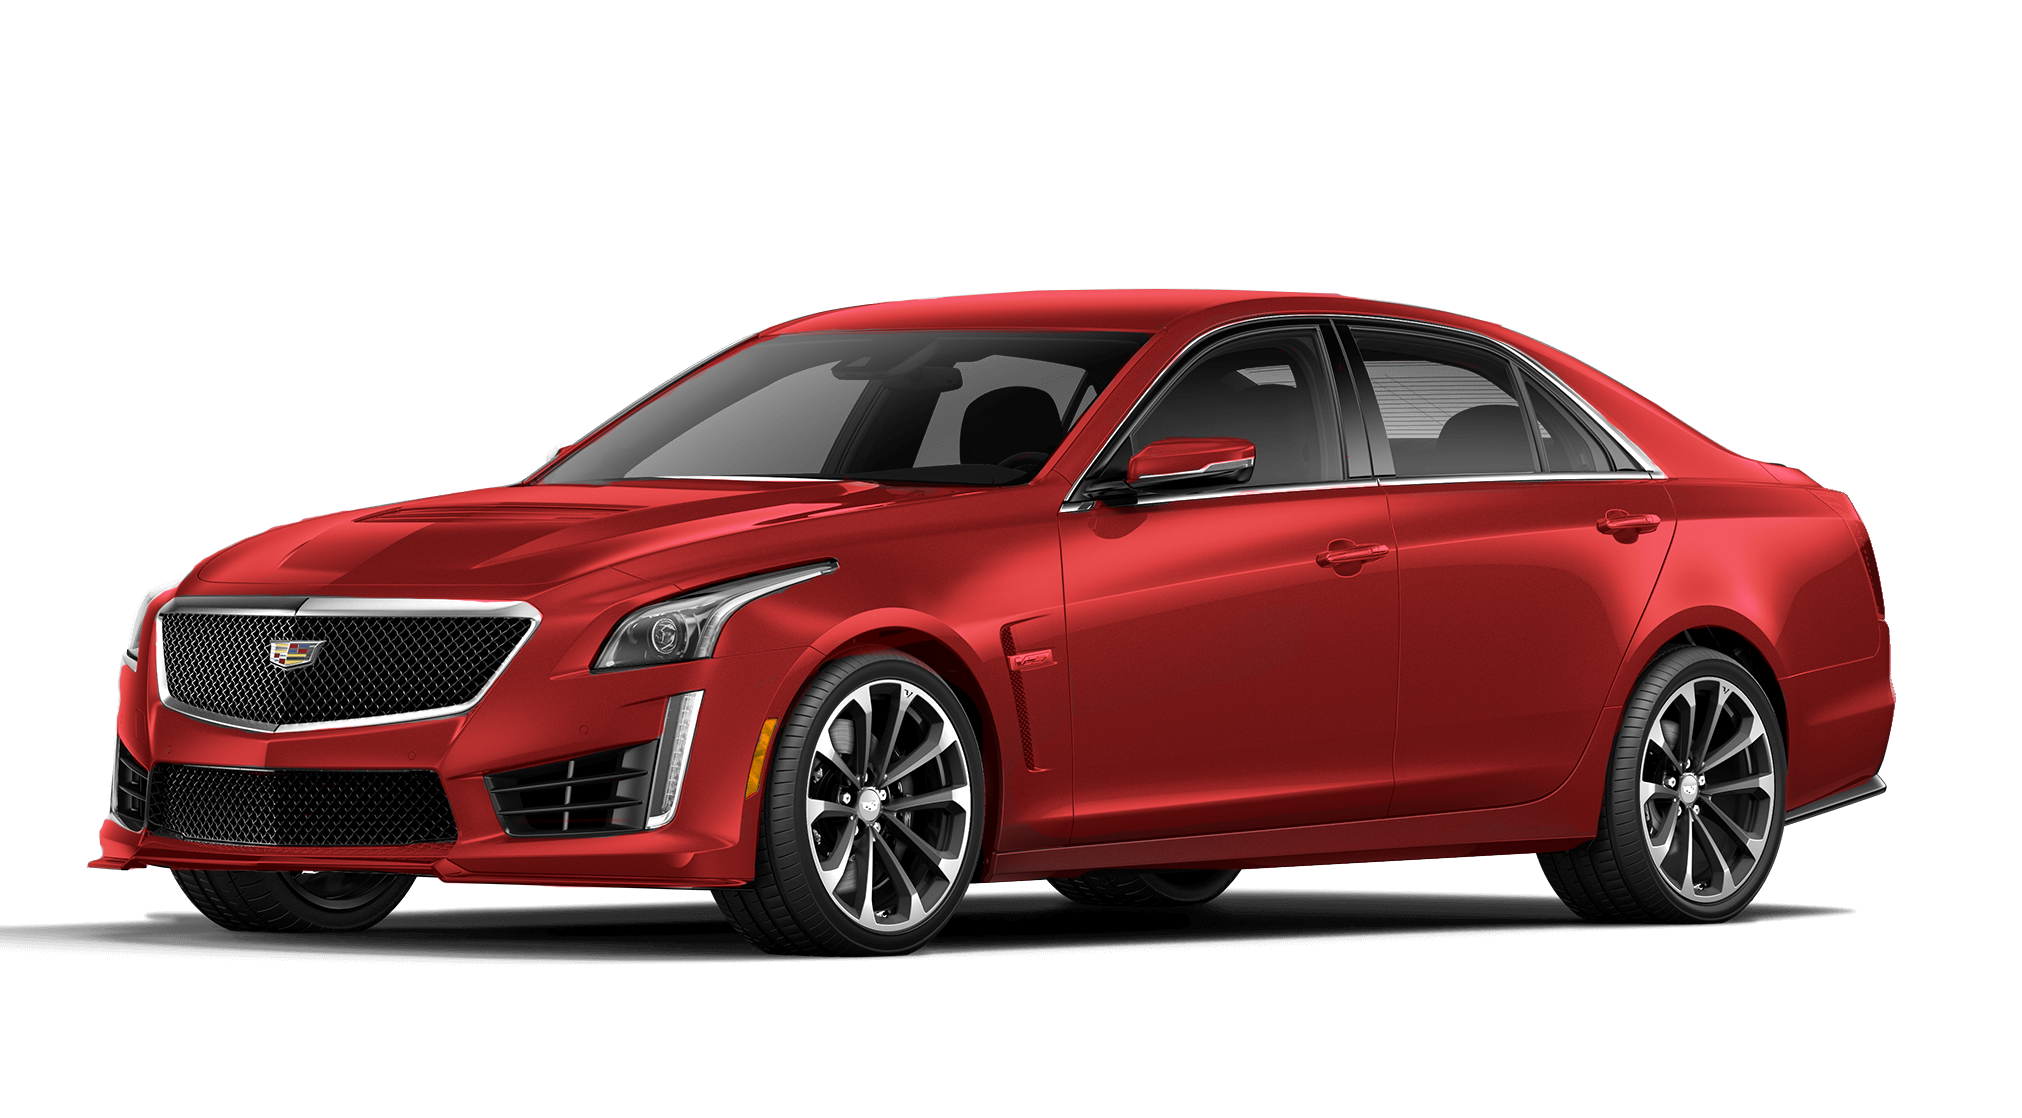 Red Obsession Cadillac CTS-V